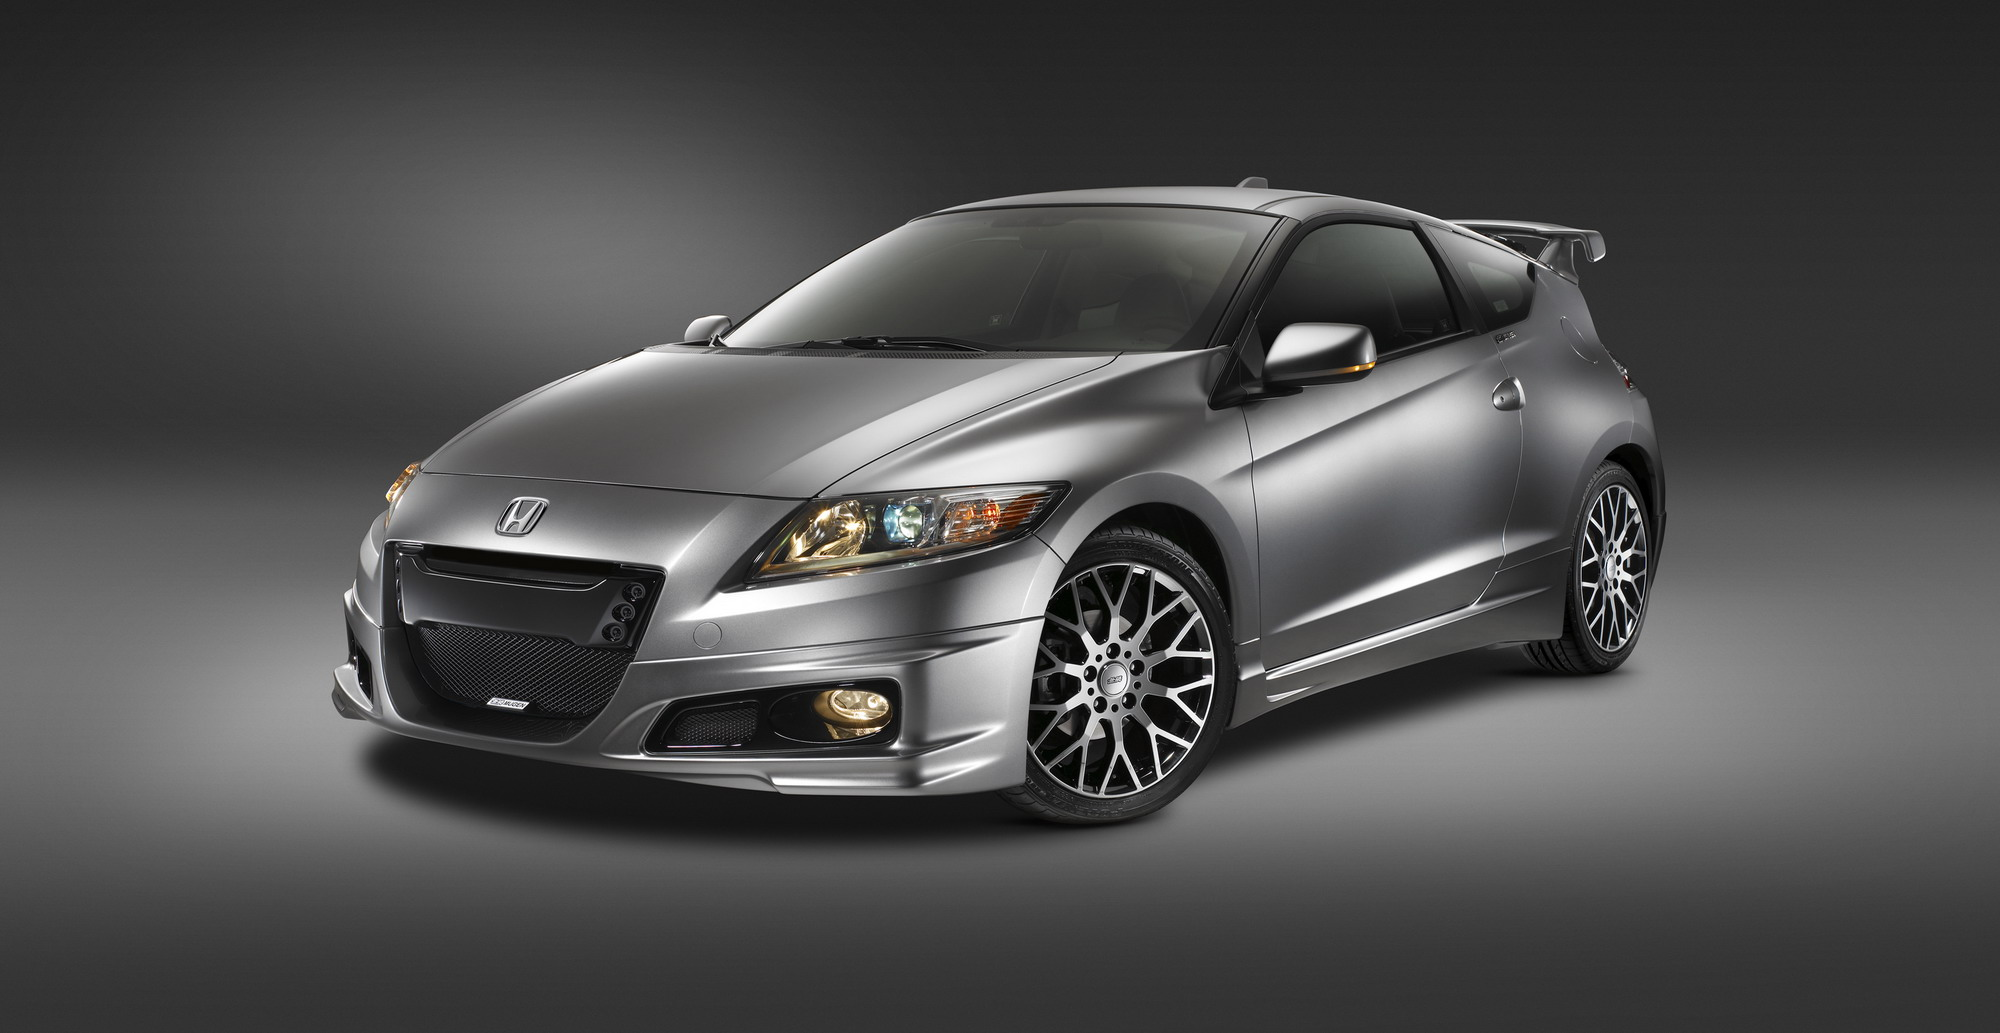 2011 honda cr z equipped with mugen accessories review top speed. Black Bedroom Furniture Sets. Home Design Ideas